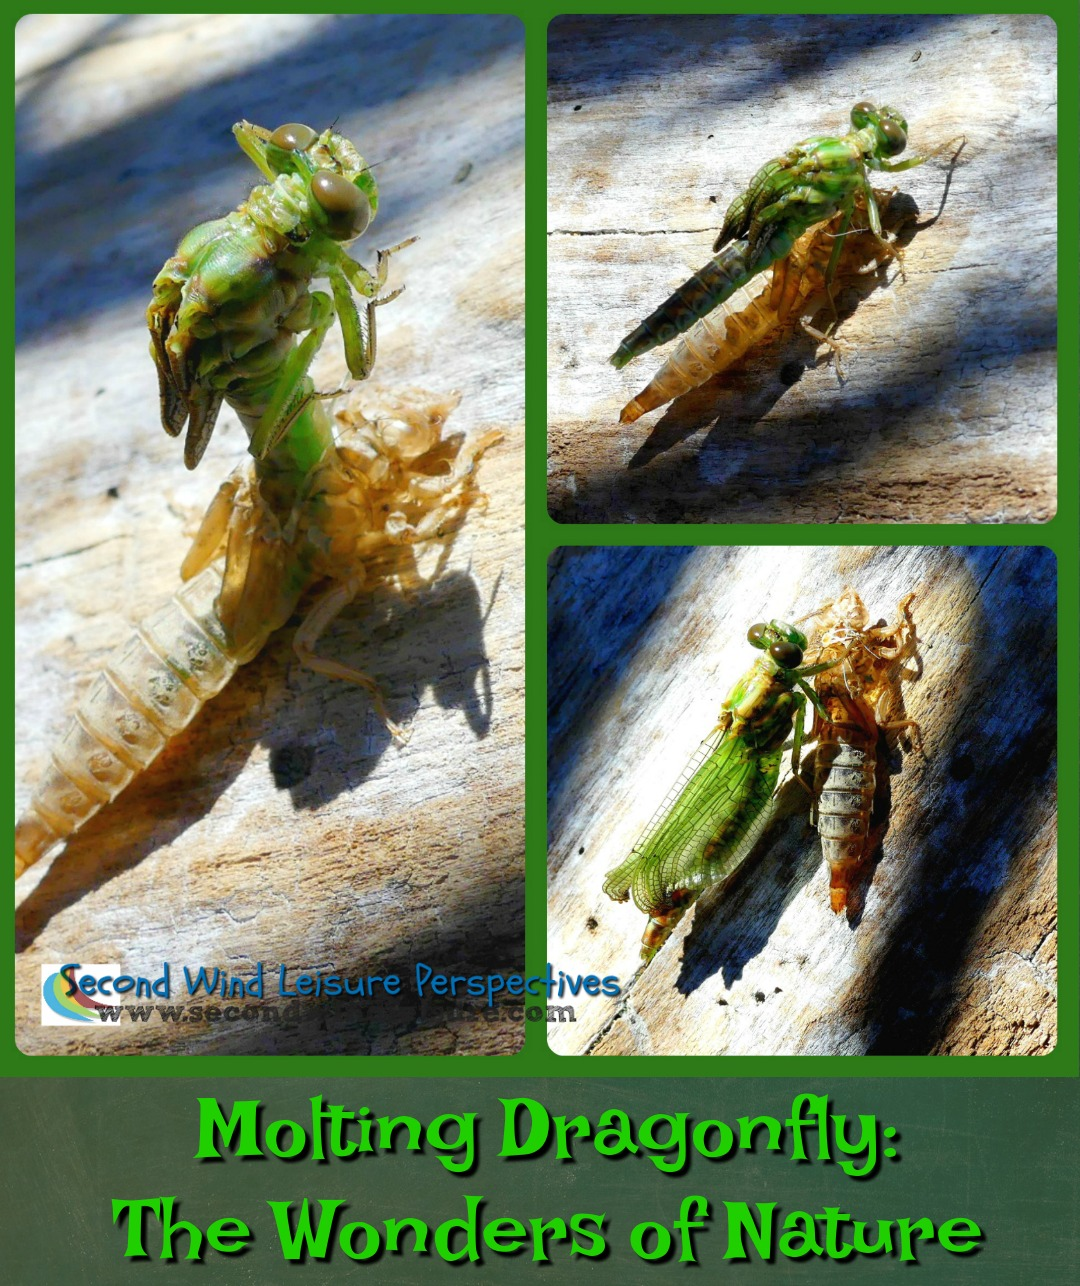 Molting Dragonfly: The Wonders of Nature